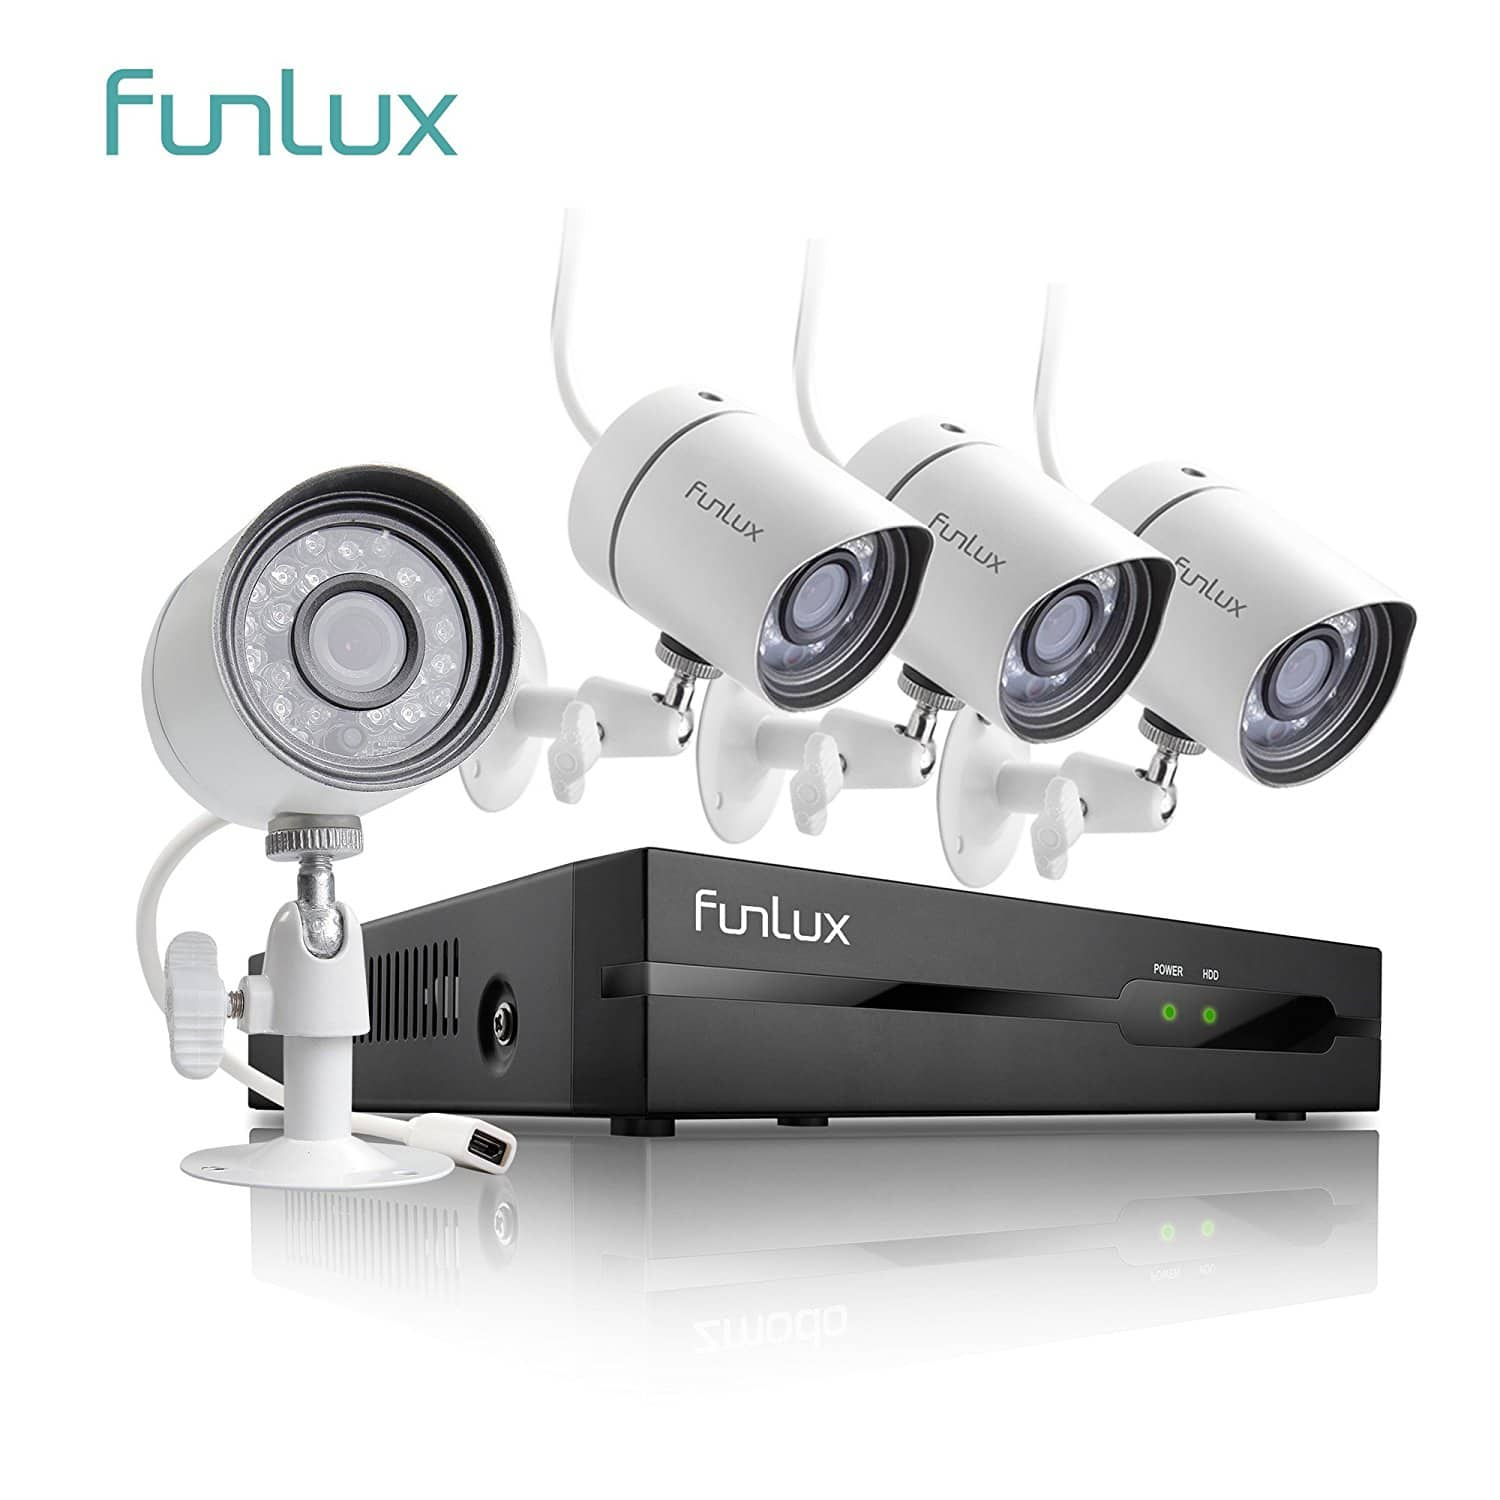 Funlux 4 Channel 1080p HDMI NVR Simplified PoE 4 720p HD Outdoor Indoor Security Camera System $95.99